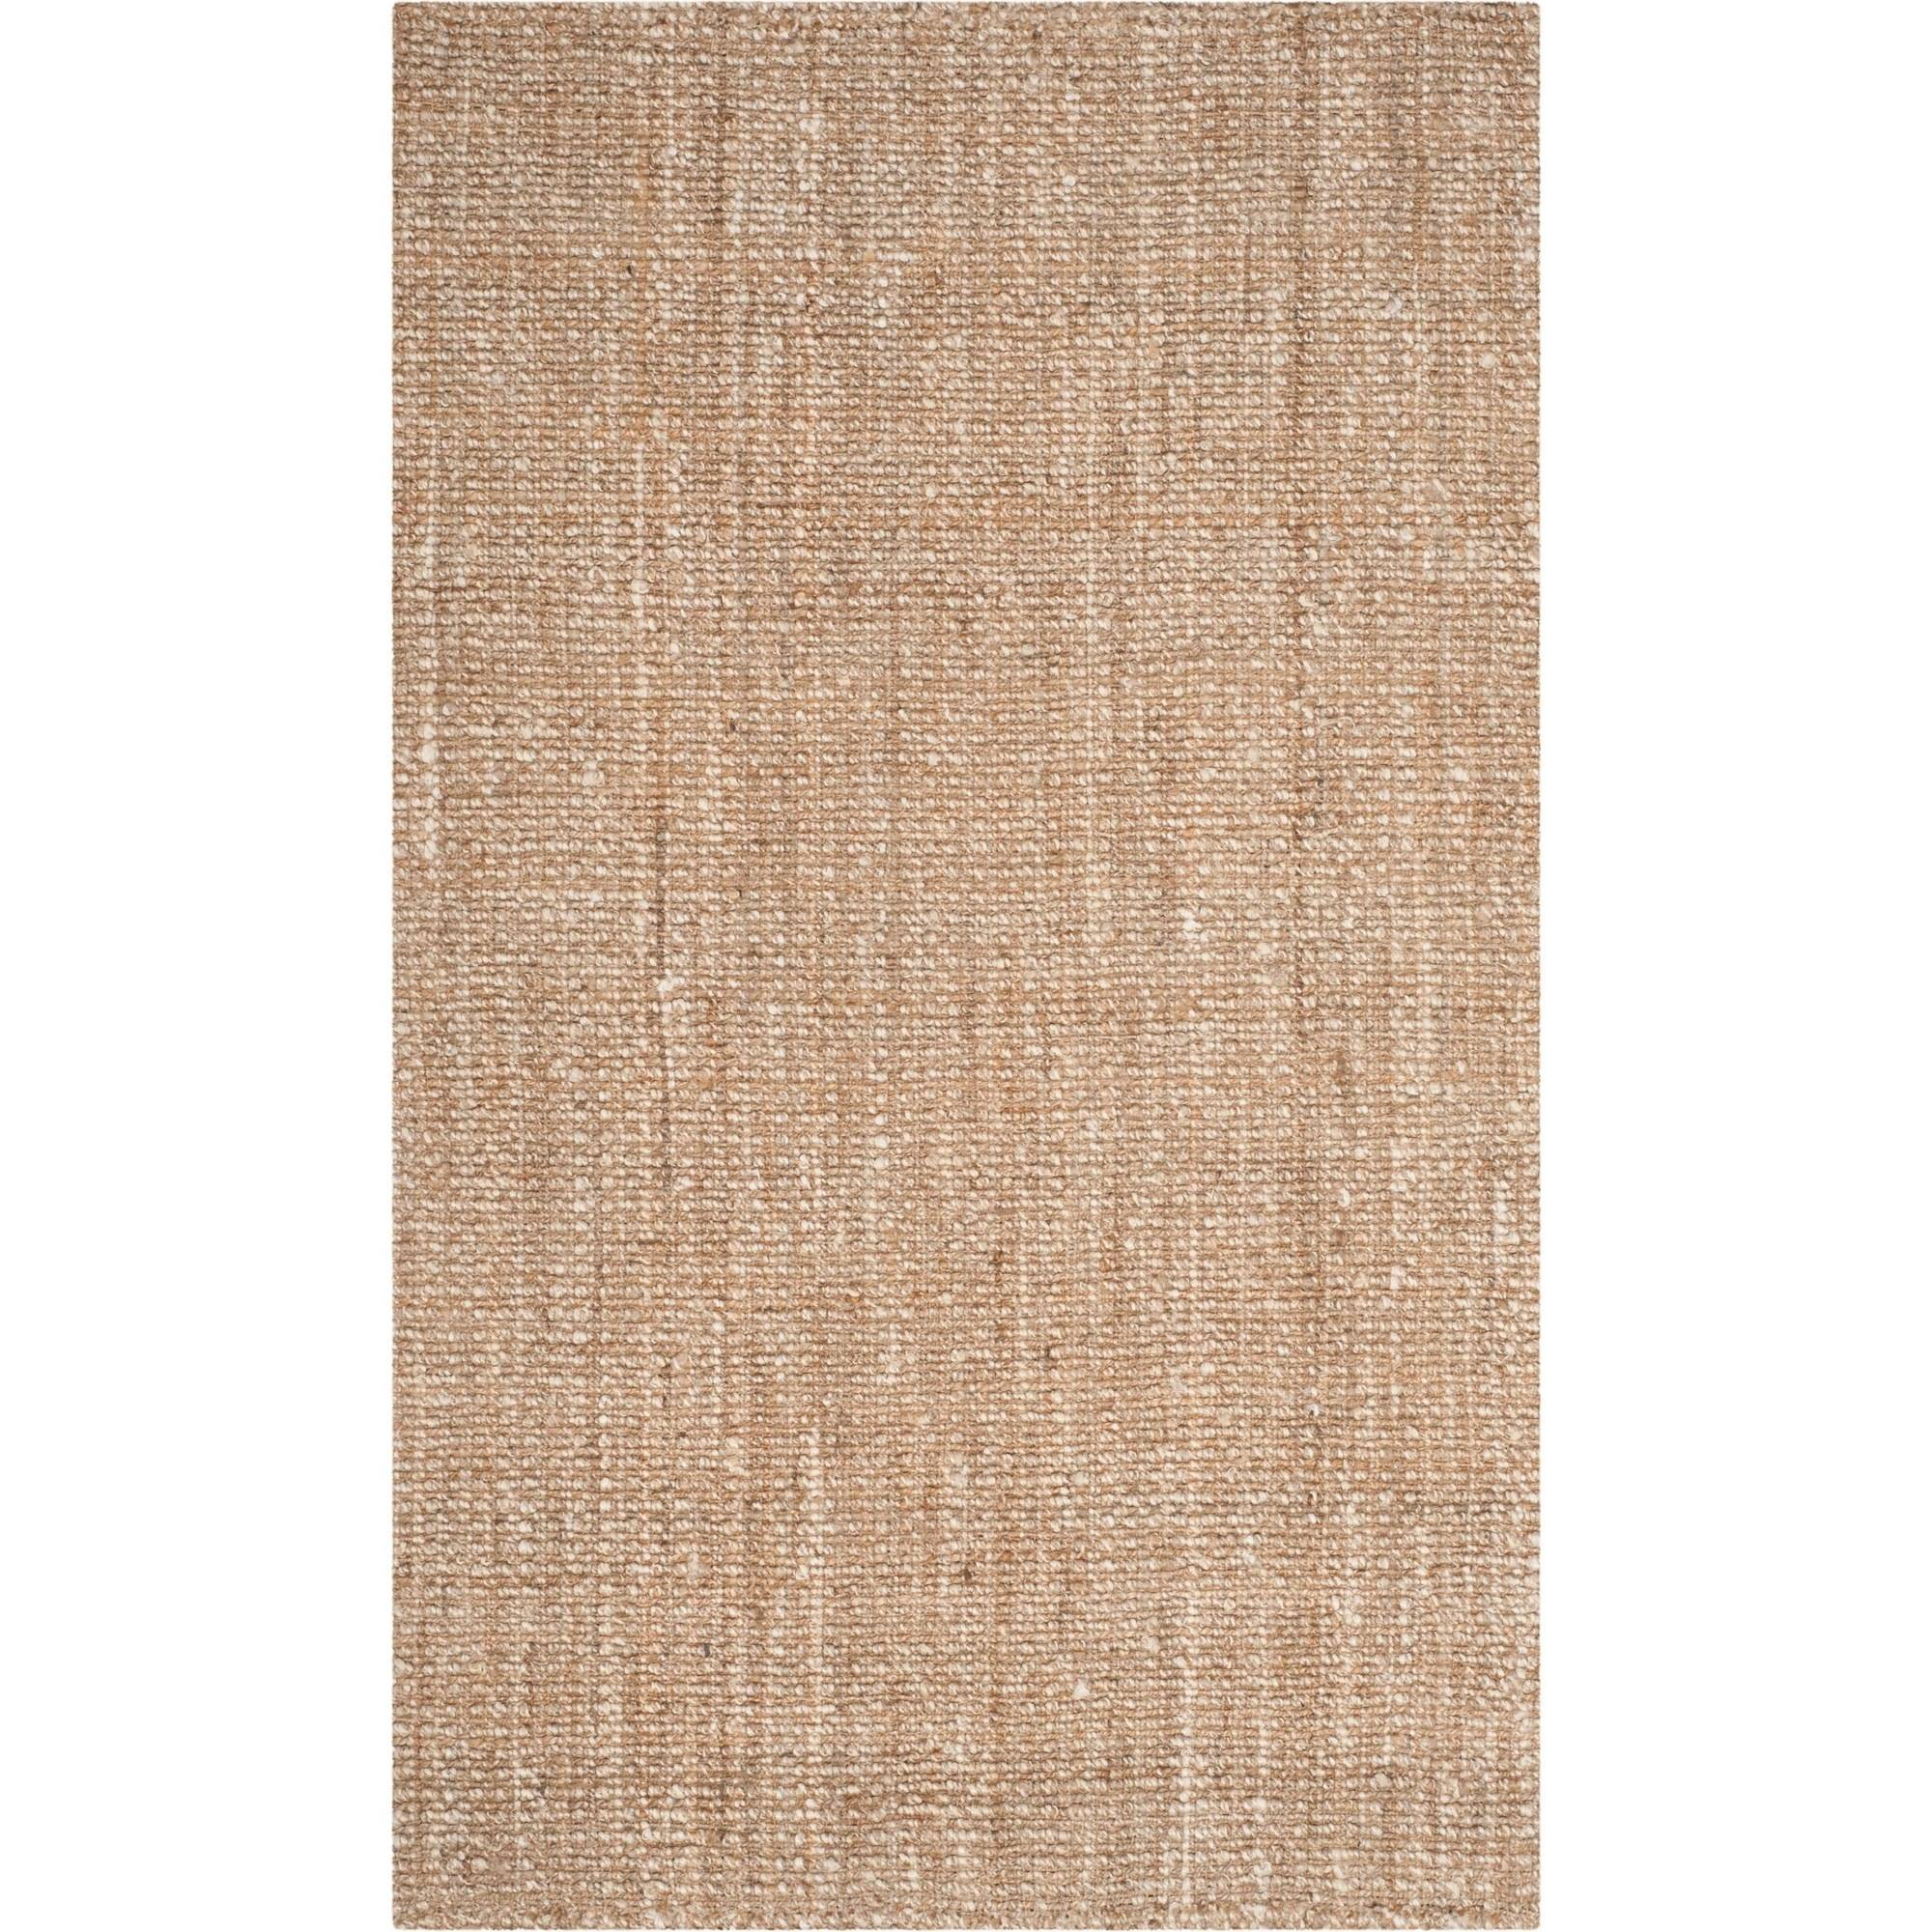 Safavieh Natural Fiber Crispin Braided Area Rug